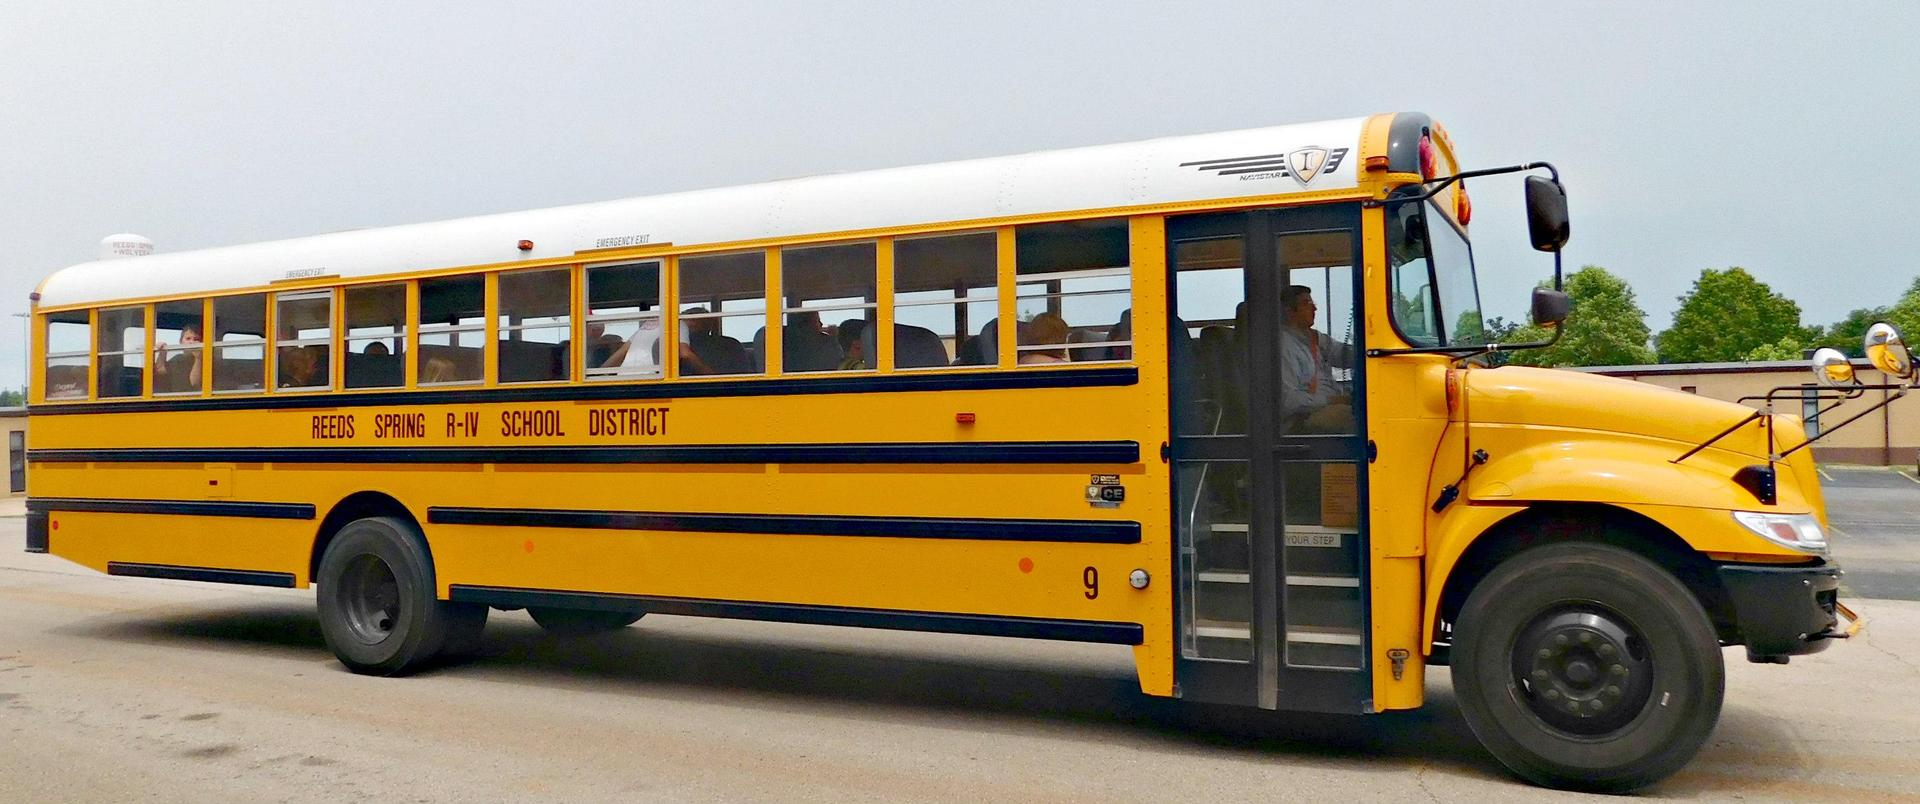 pic of school bus